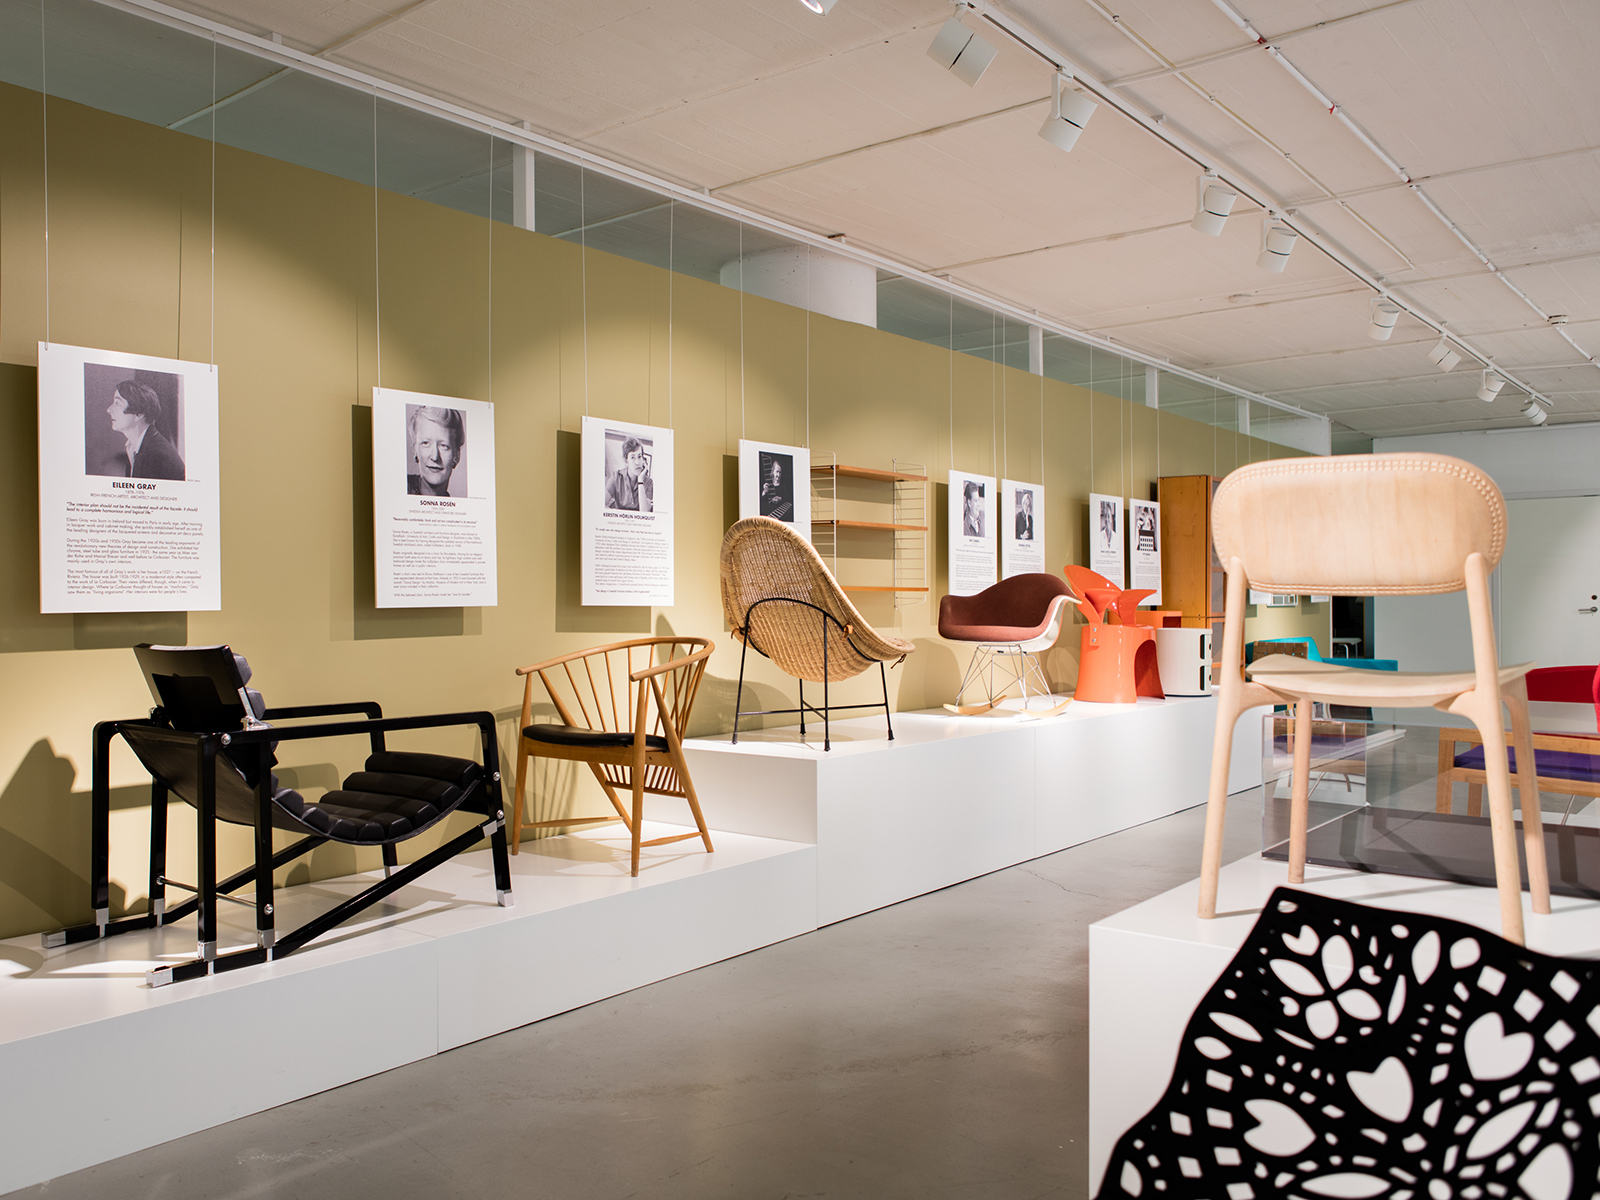 Female Traces - Exhibition at Möbeldesignmuseum in Stockholm until March 2020